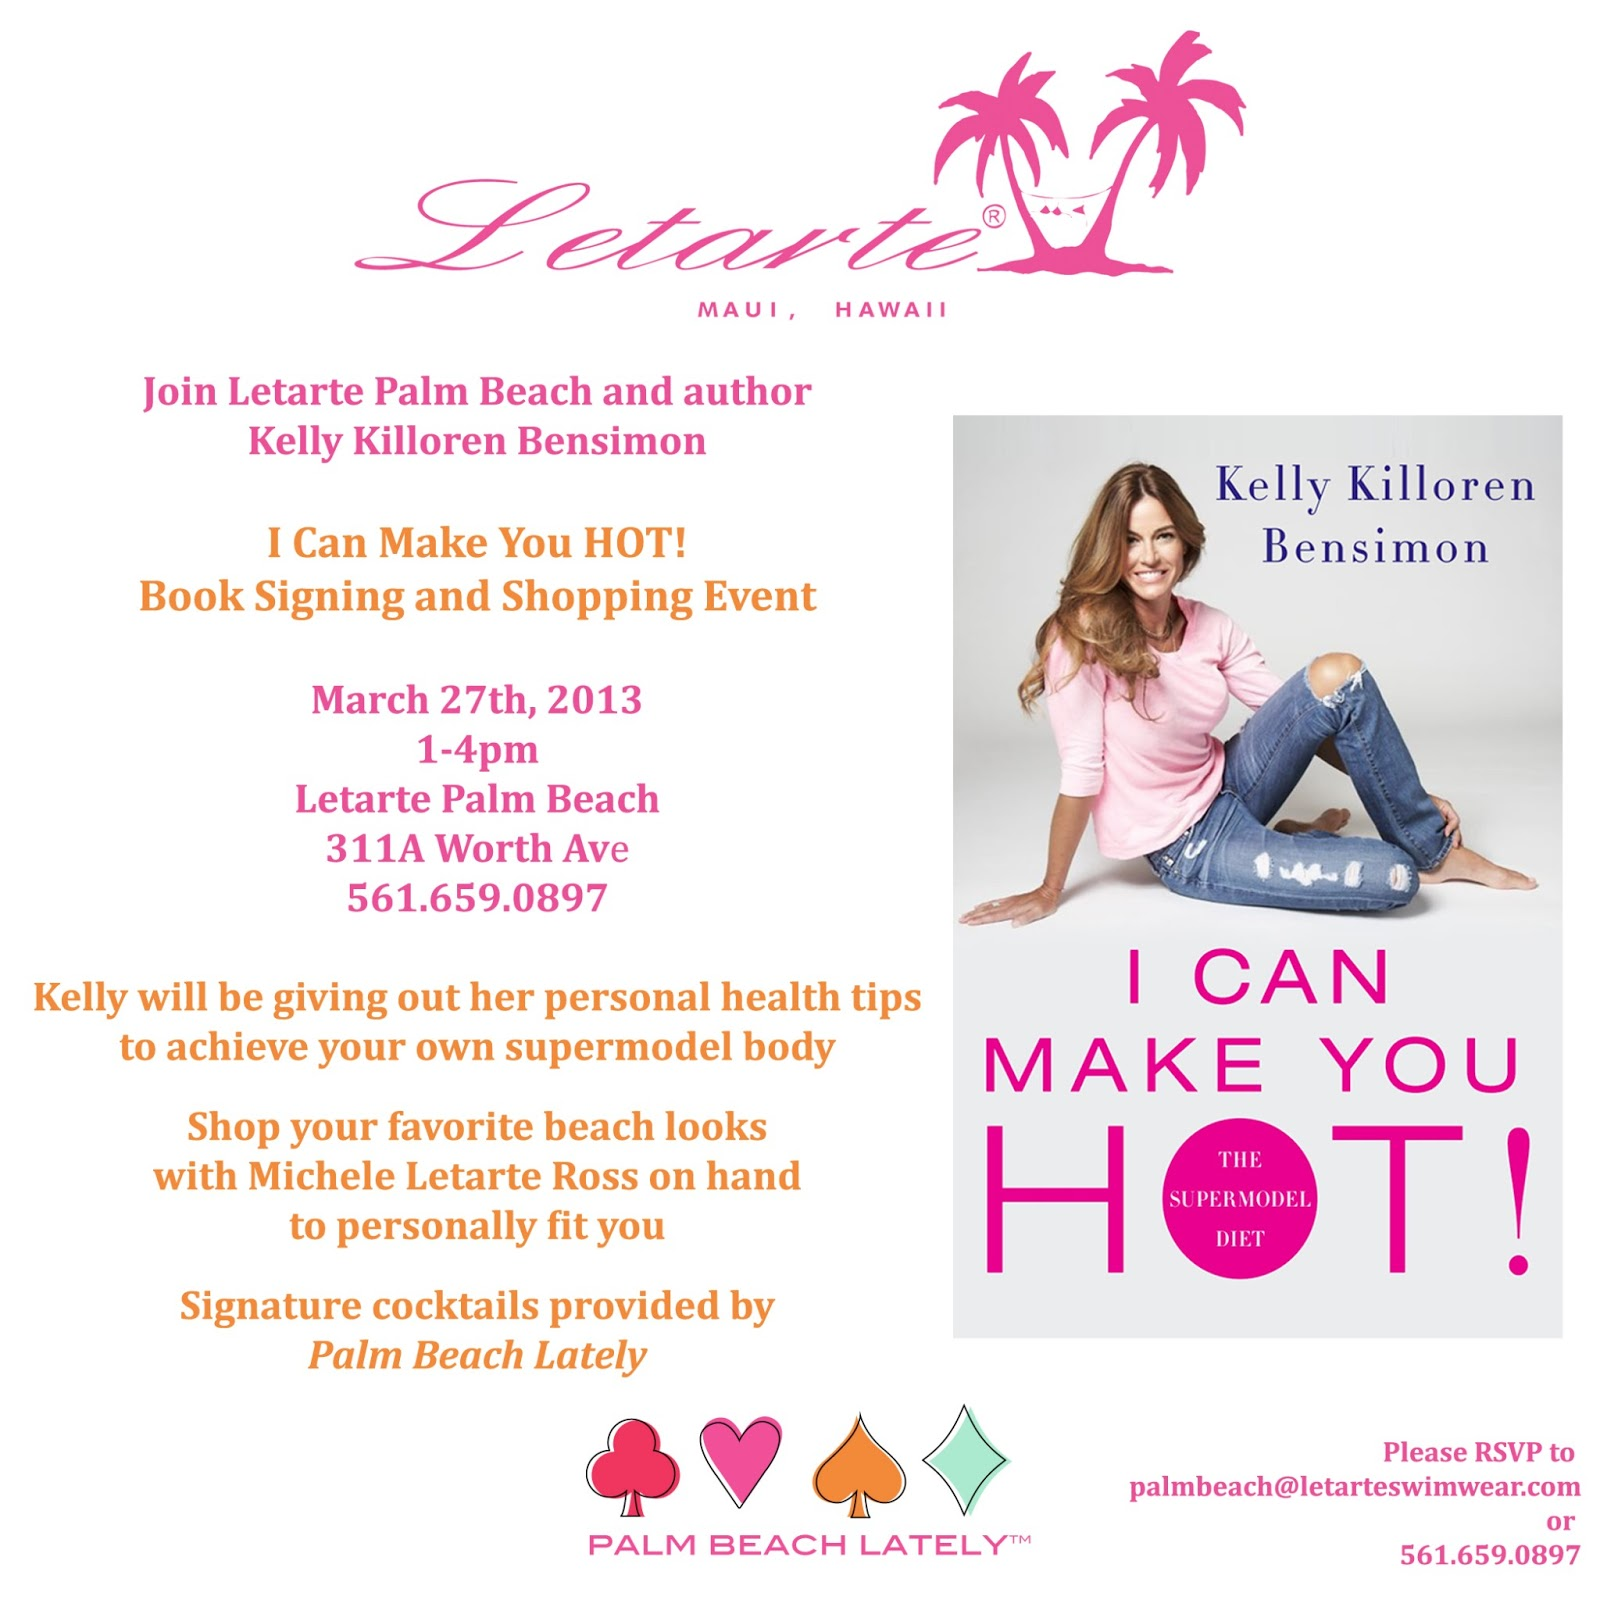 Beauty Get Hot With Kelly Killoren Bensimon At Letarte